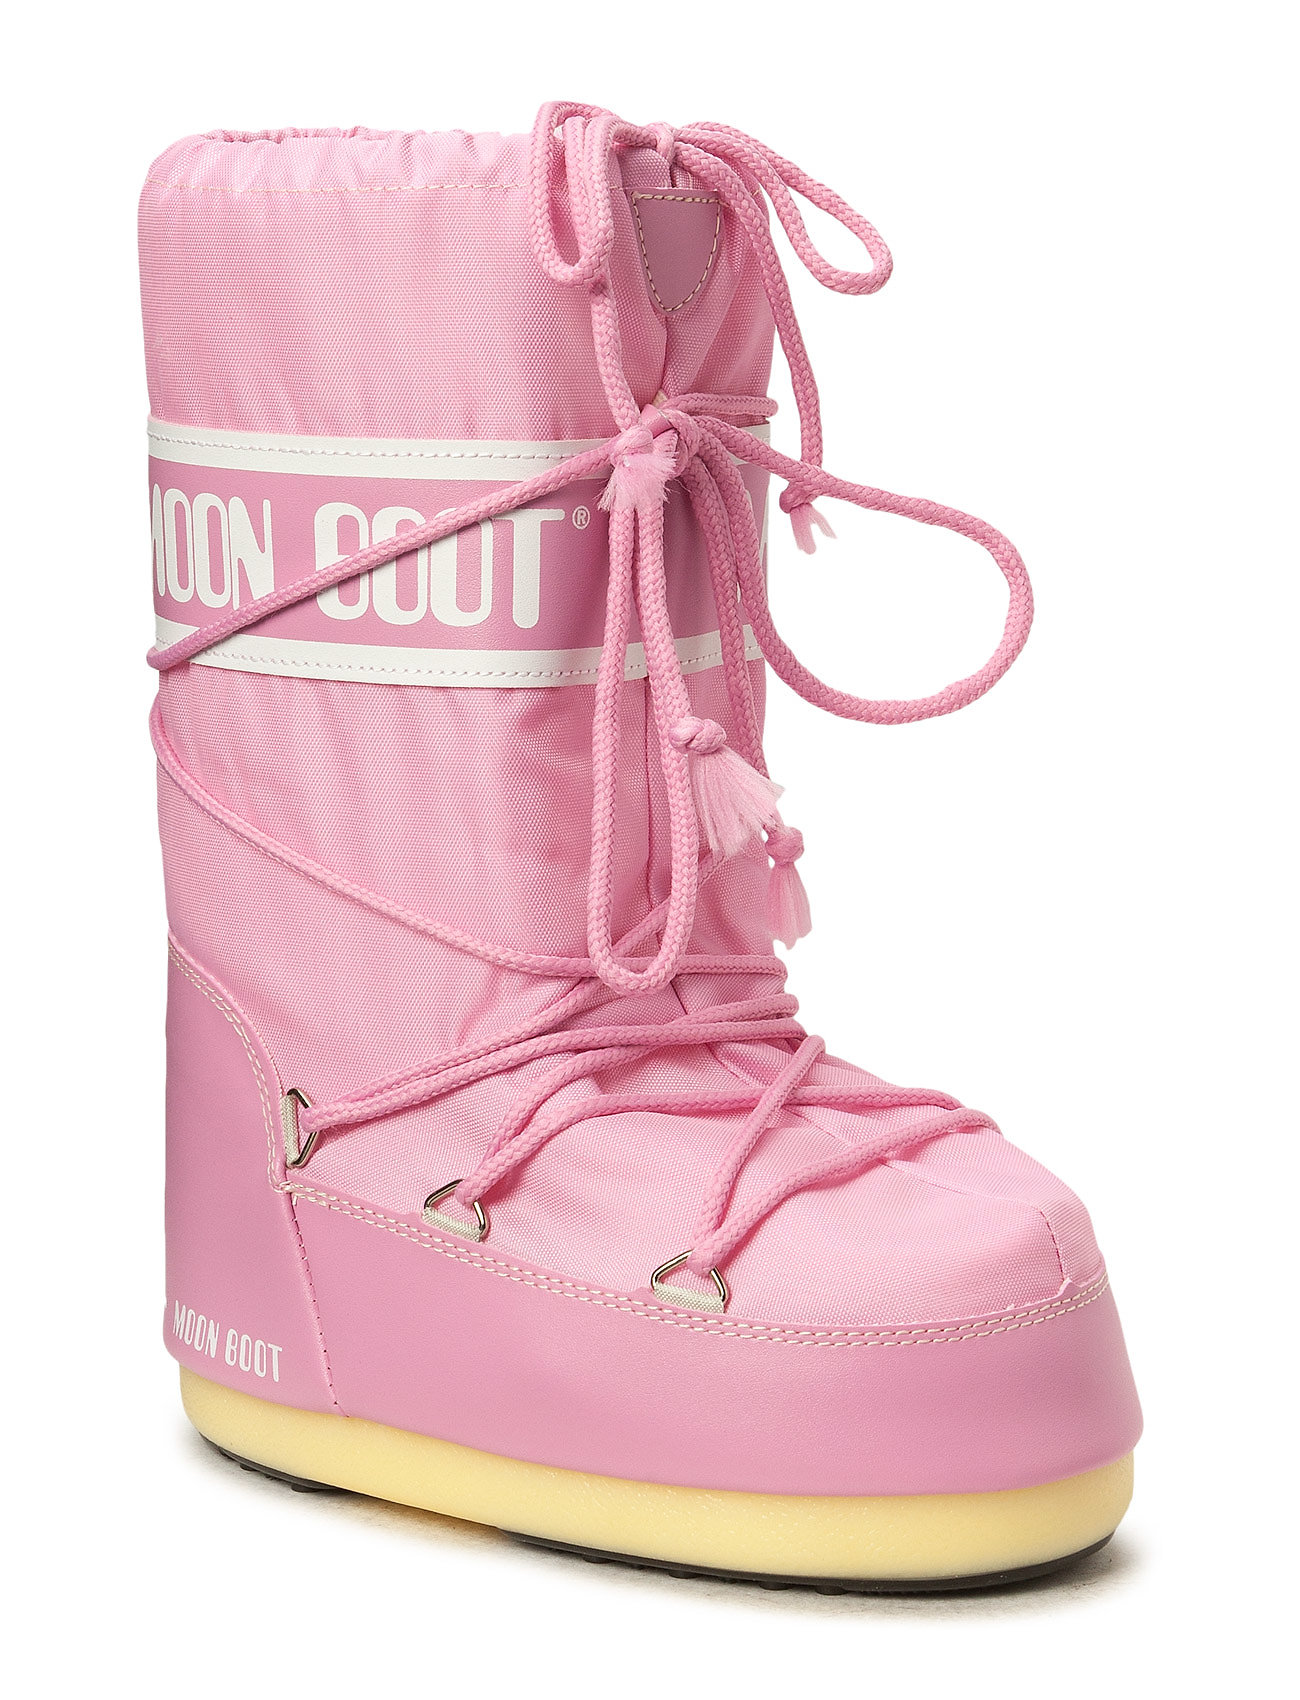 Image of Moon Boot Nylon Shoes Boots Ankle Boots Ankle Boot - Flat Lyserød Moon Boot (3446397215)